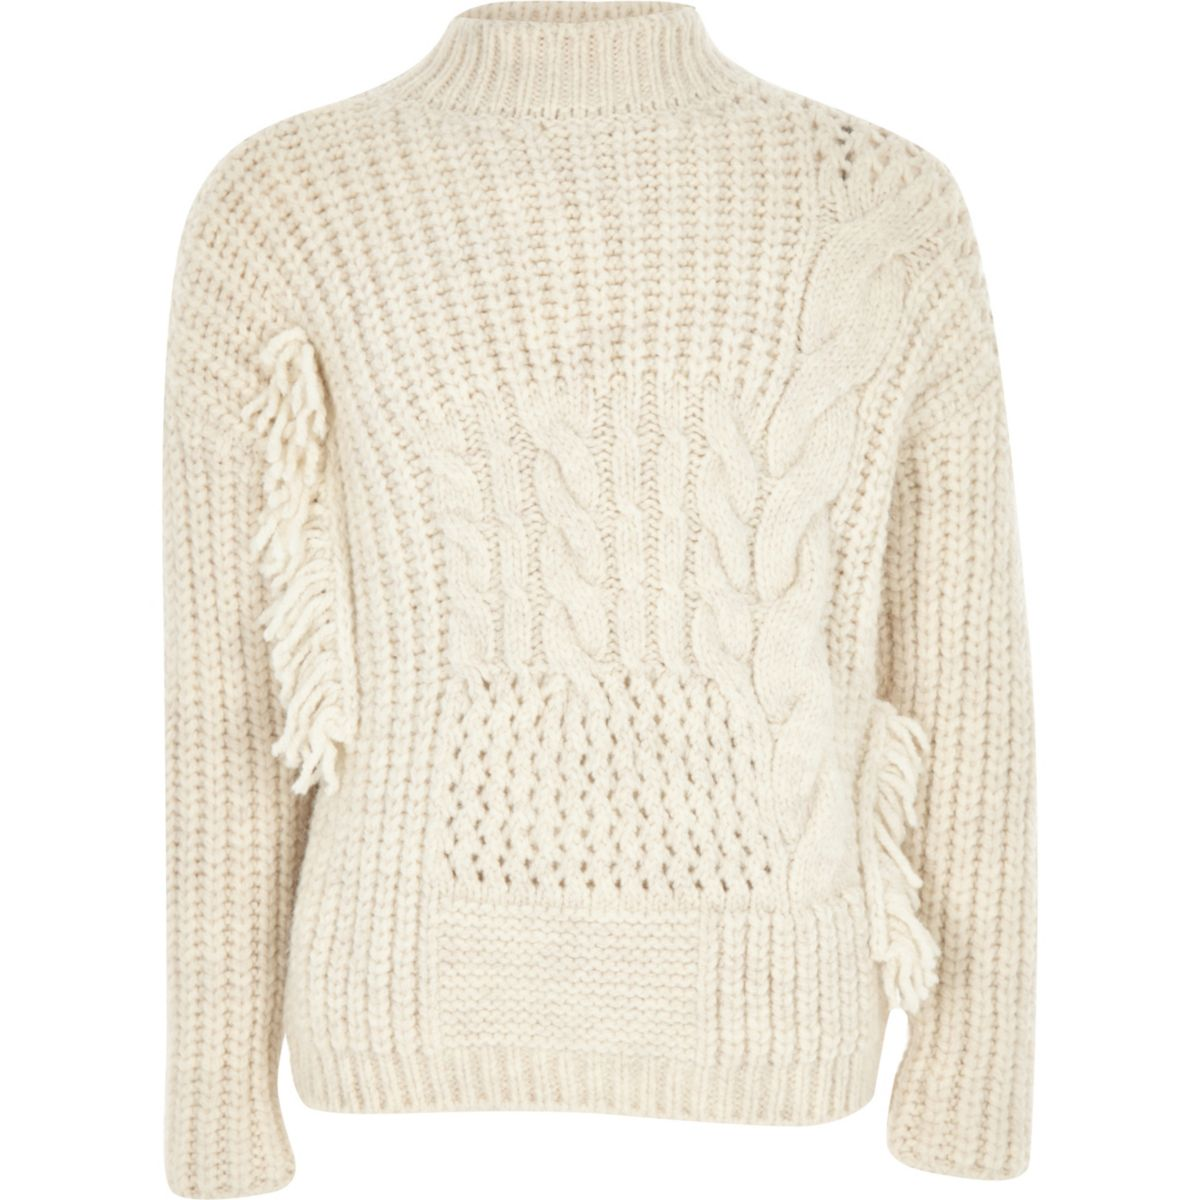 Girls cream cable knit high neck sweater